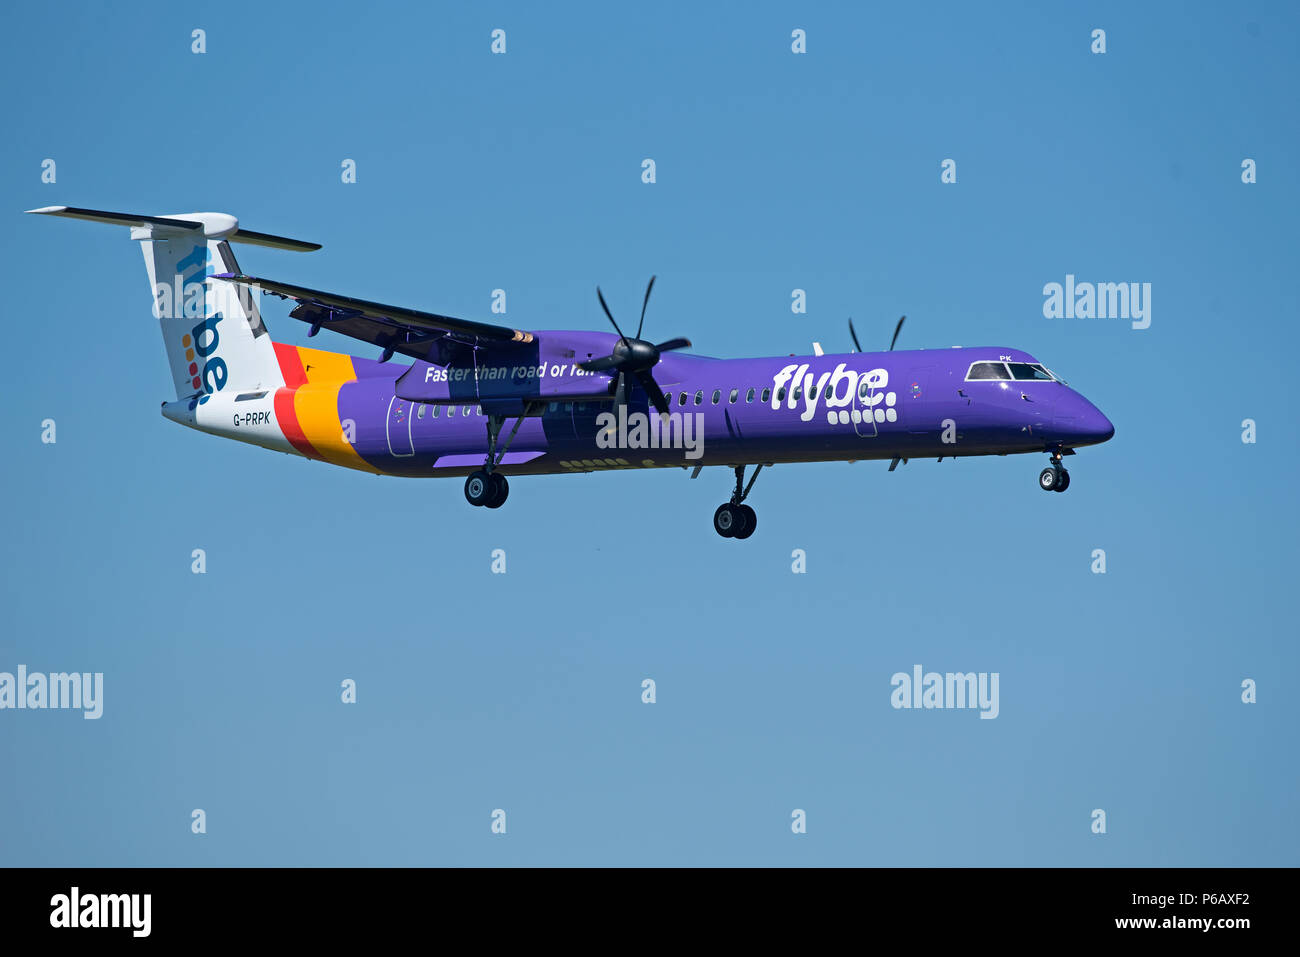 Flybe Dash 8 -400Q Passenger aircraft approaching Inverness airport in the Scottish Highlands ready for landing. - Stock Image